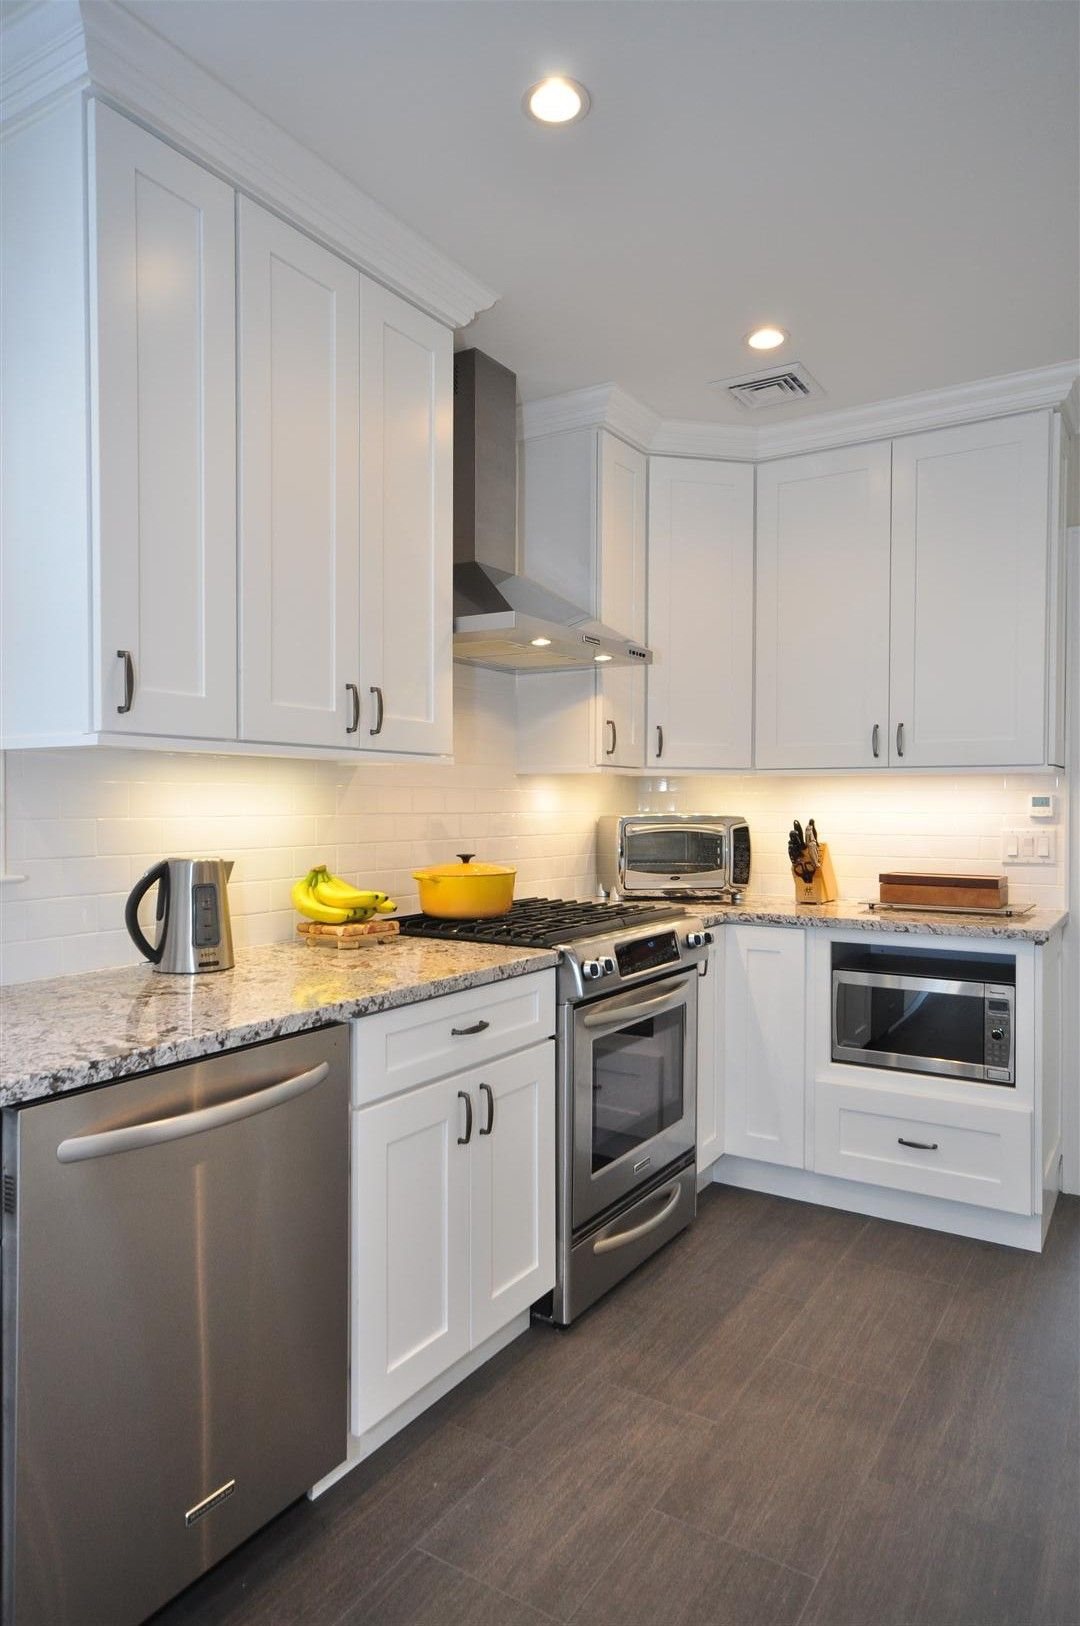 kitchen cabinets white white shaker kitchen cabinets Gray Floor Gray Counter tops